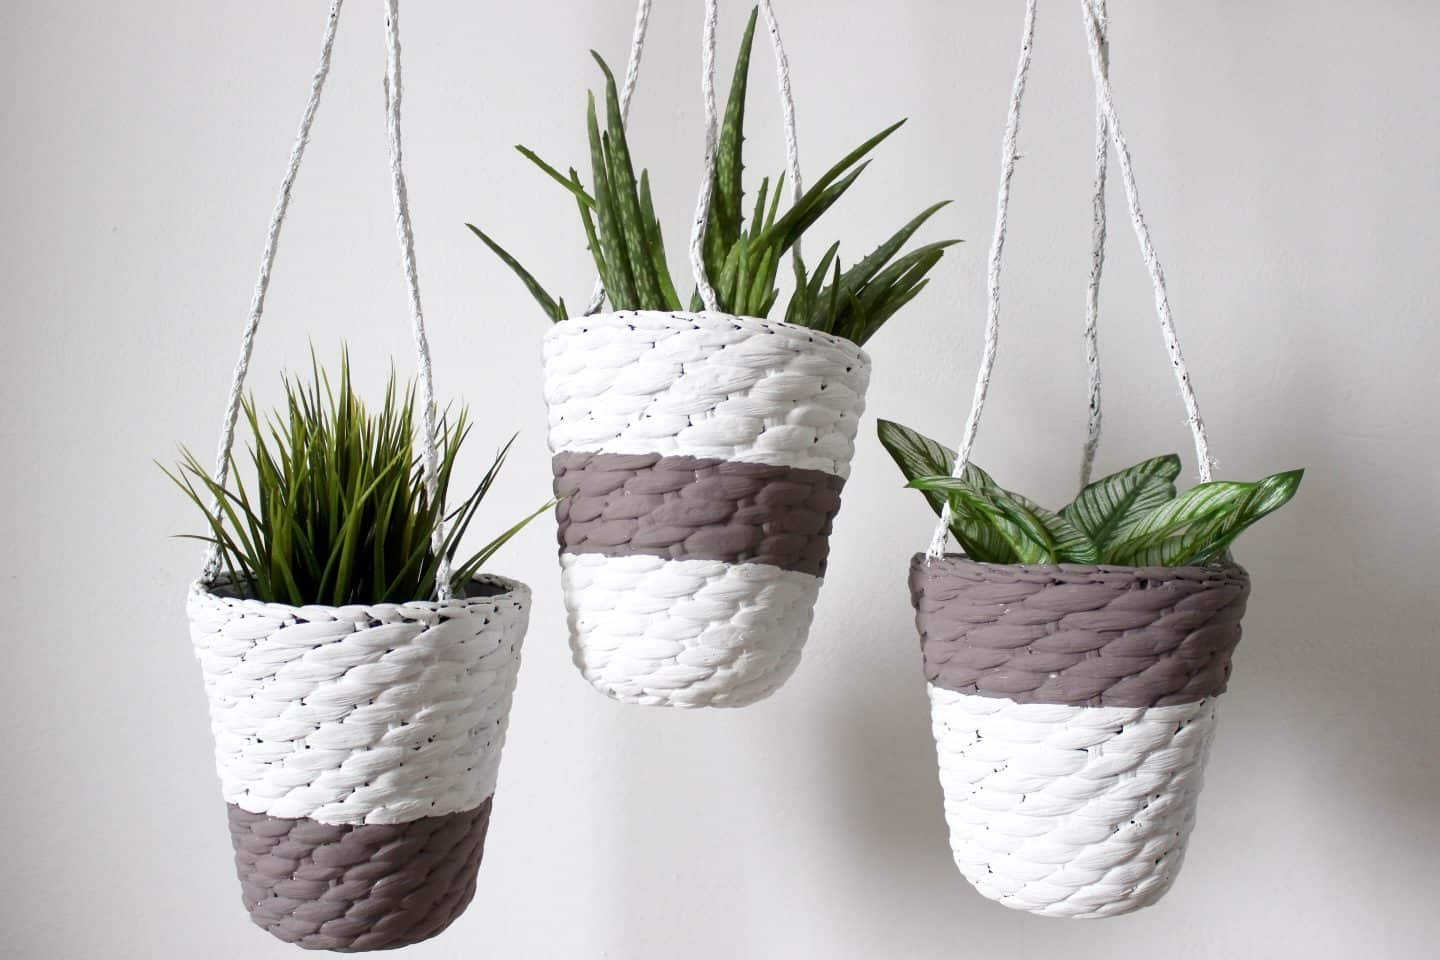 DIY Ikea Hacks that will you tons of money #diy #ikea #ikeahacks #diyhacks #hangingplanters